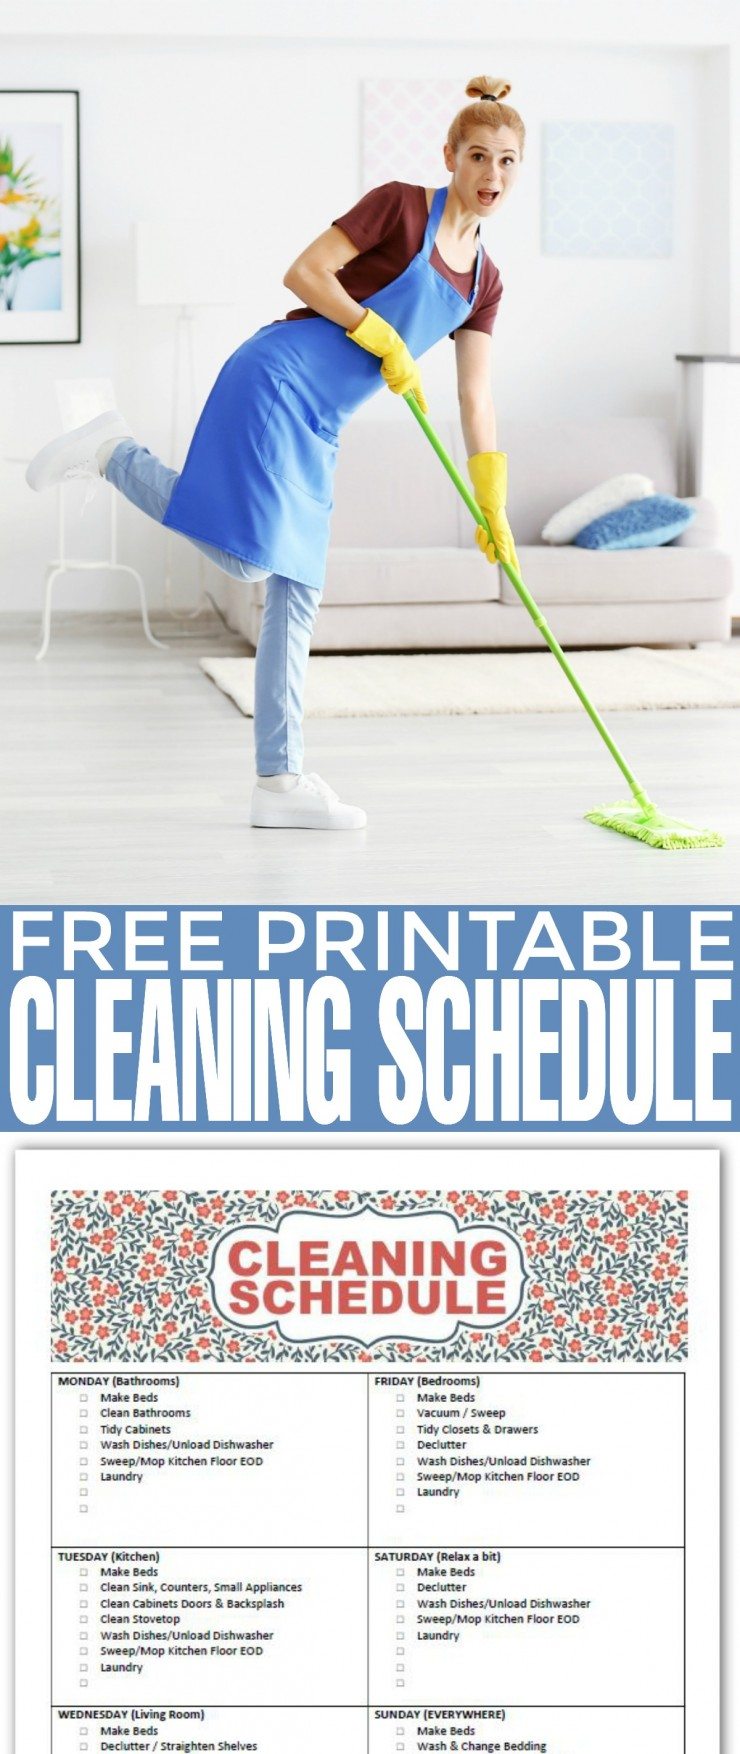 Download and print off this Free Printable Cleaning Schedule now and start to get organised for more efficient cleaning around your house. Once you get into the groove of following a set cleaning schedule the jobs will only get easier and easier as your living space gets cleaned regularly.